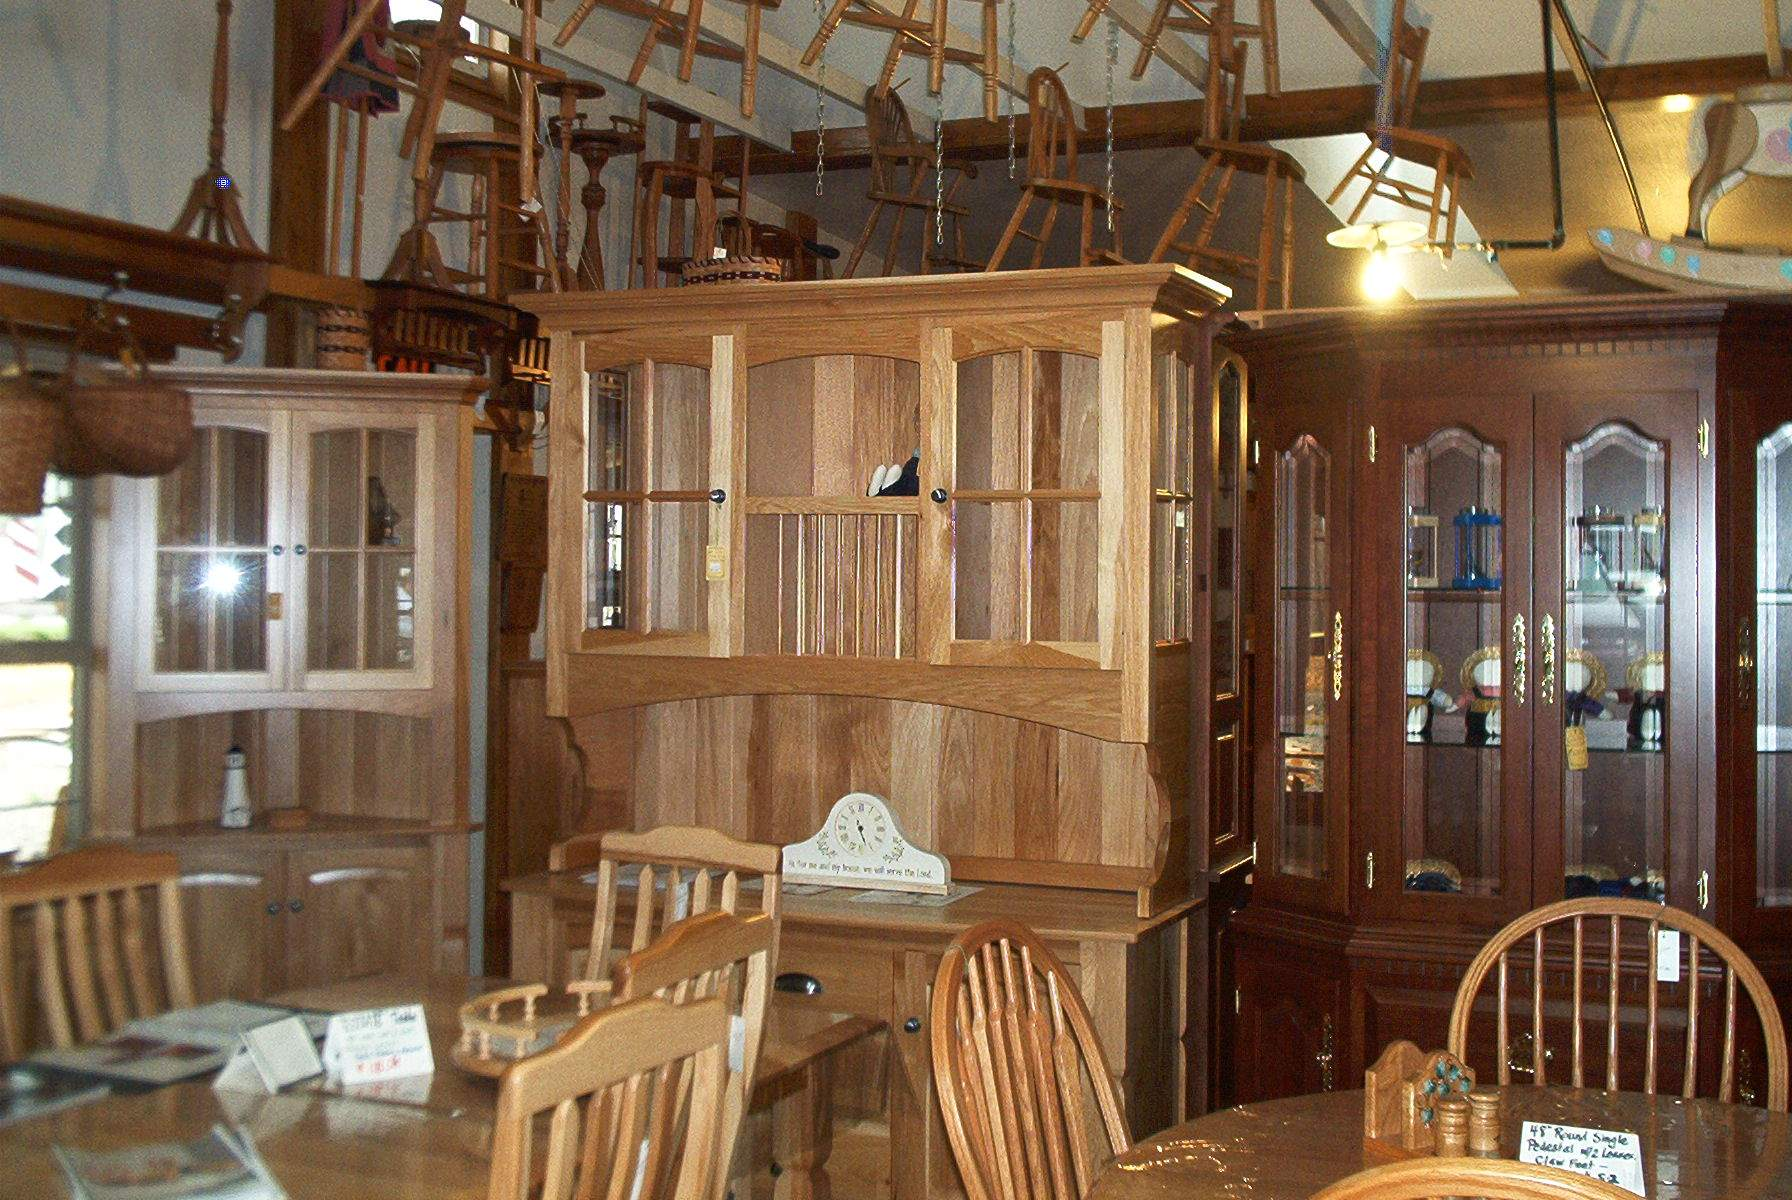 Amish Furniture Lancaster Ohio Amish Furniture Denver Pa Furniture Home Decorating Crafted